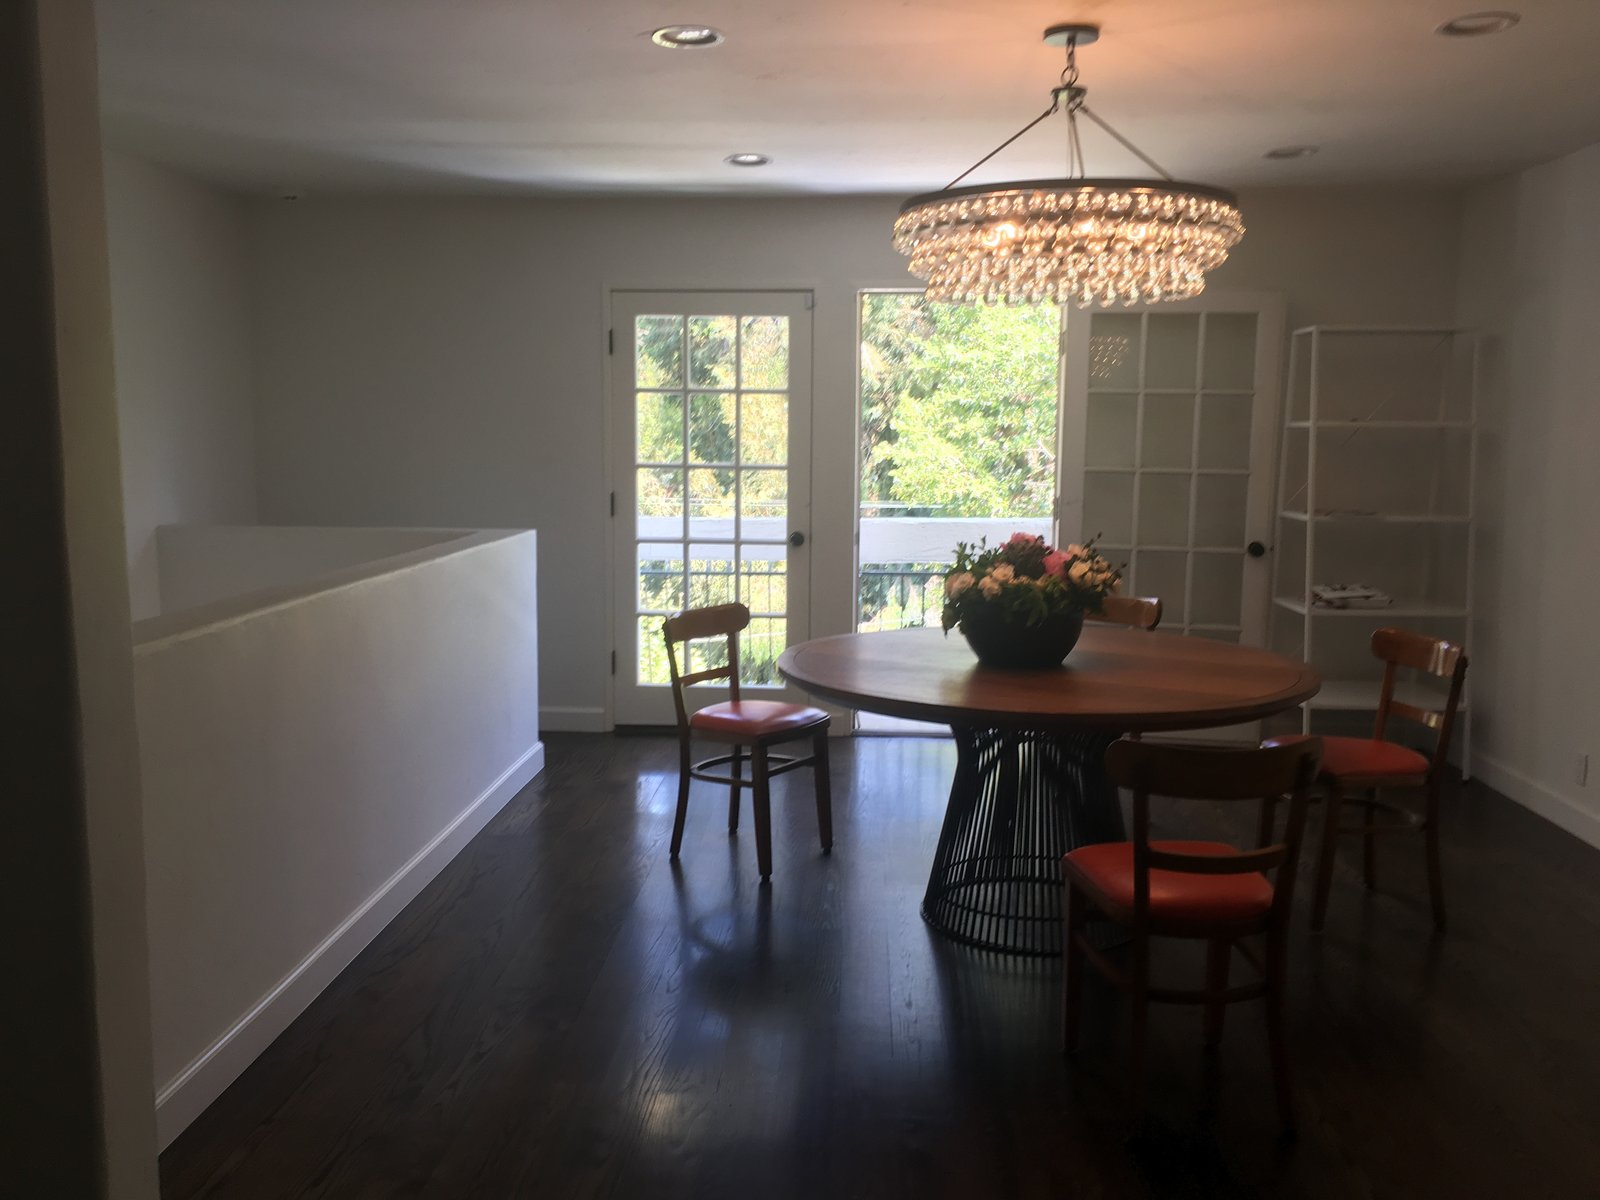 Before: Dining room of Sunshine Terrace by Sarah Zachary